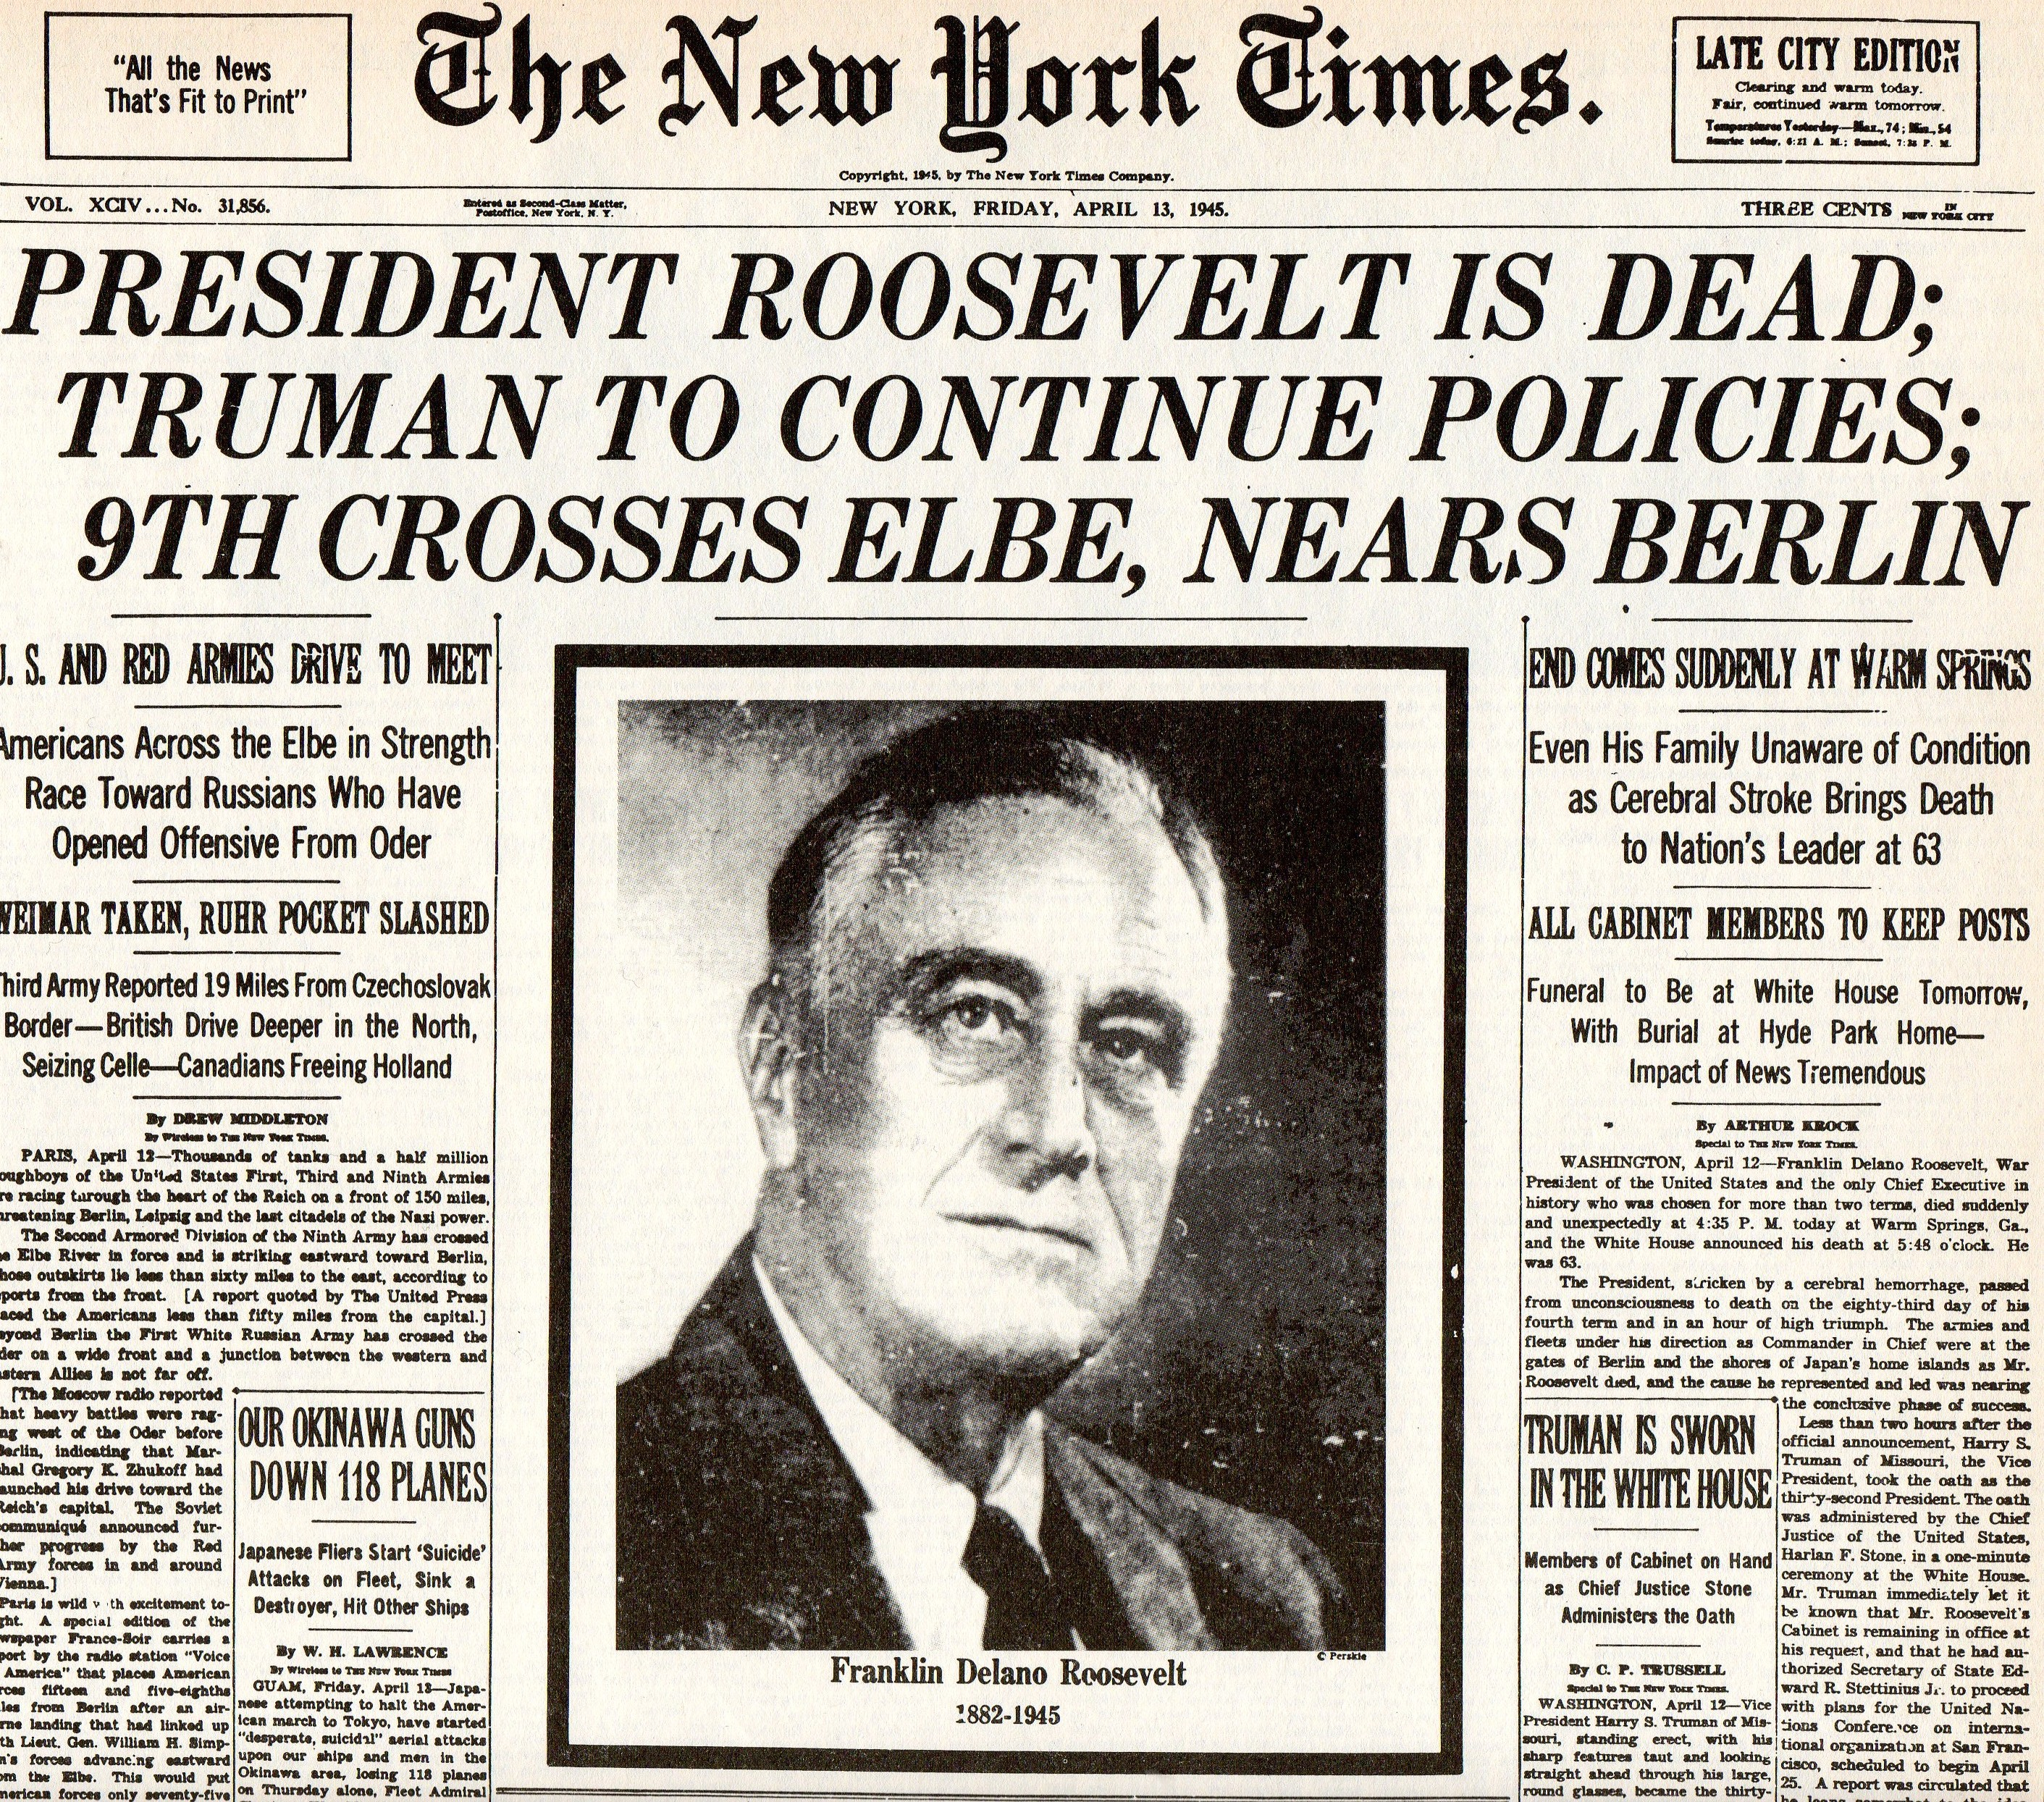 franklin delano roosevelt the labor leader essay Roosevelt, franklin delano 1882-1945 american statesman the thirty-second president of the united states of america, roosevelt is considered among the greatest political leaders of the twentieth.